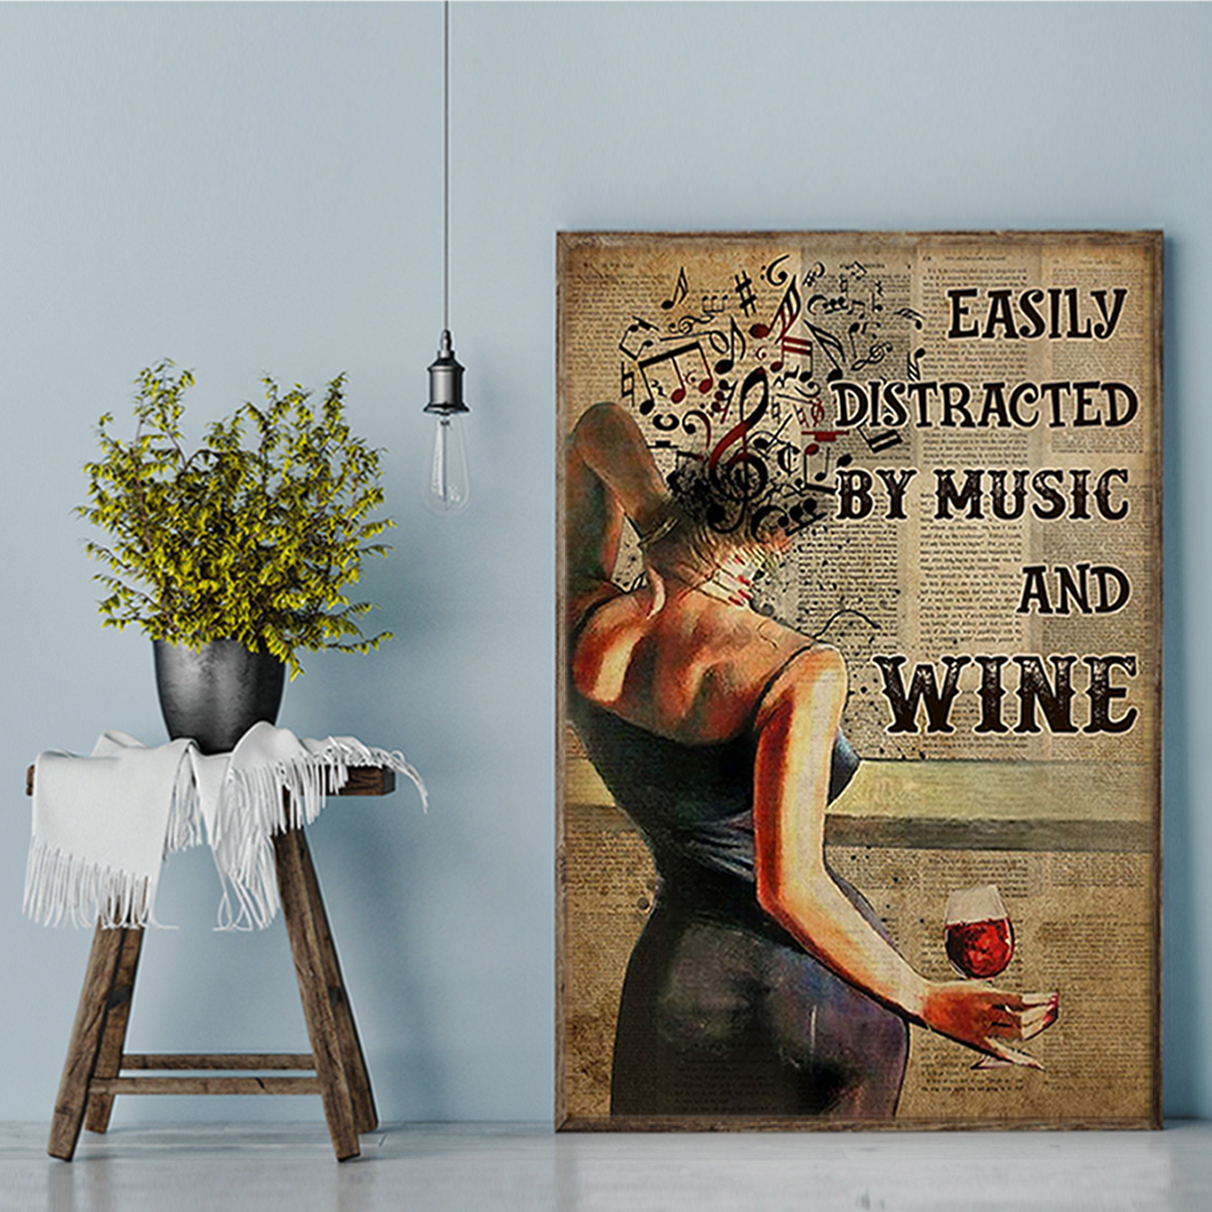 Easily distracted by music and wine book poster A3